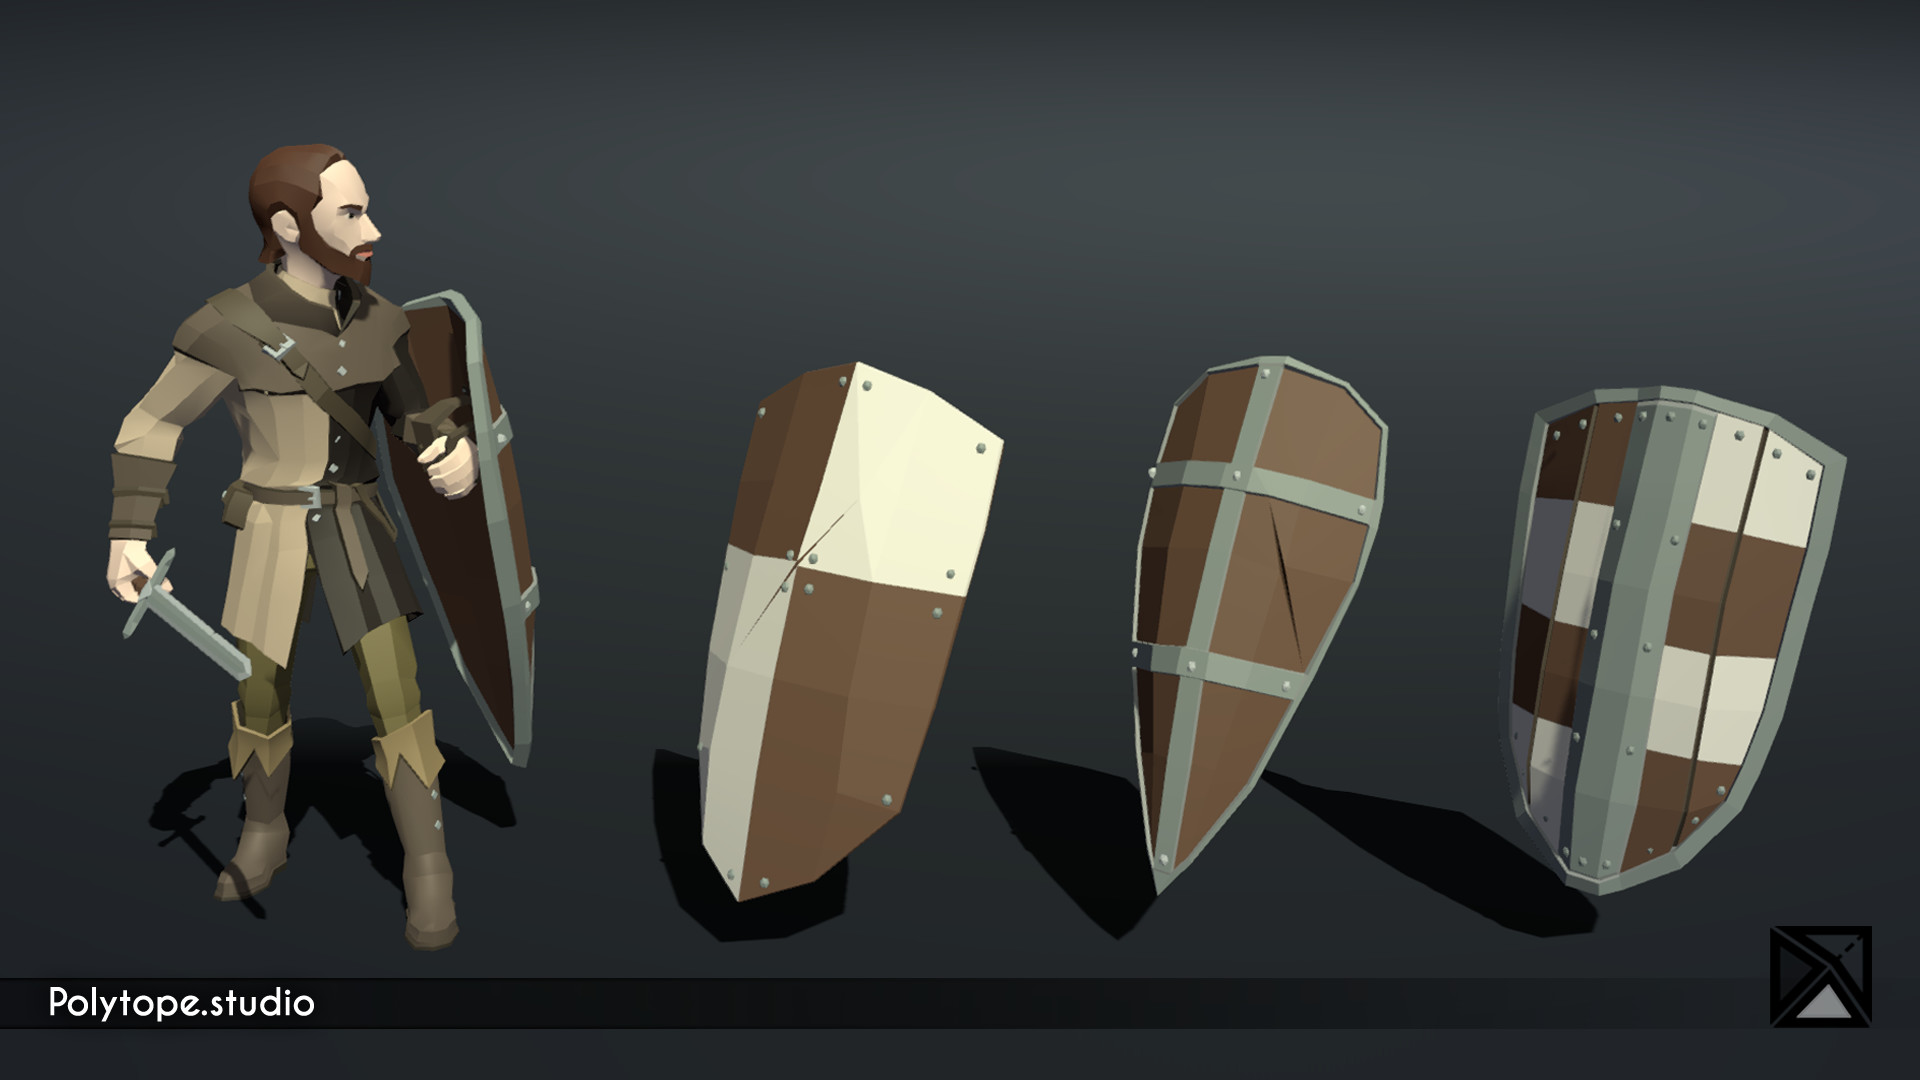 Polytope studio pt medieval lowpoly weapons shield large